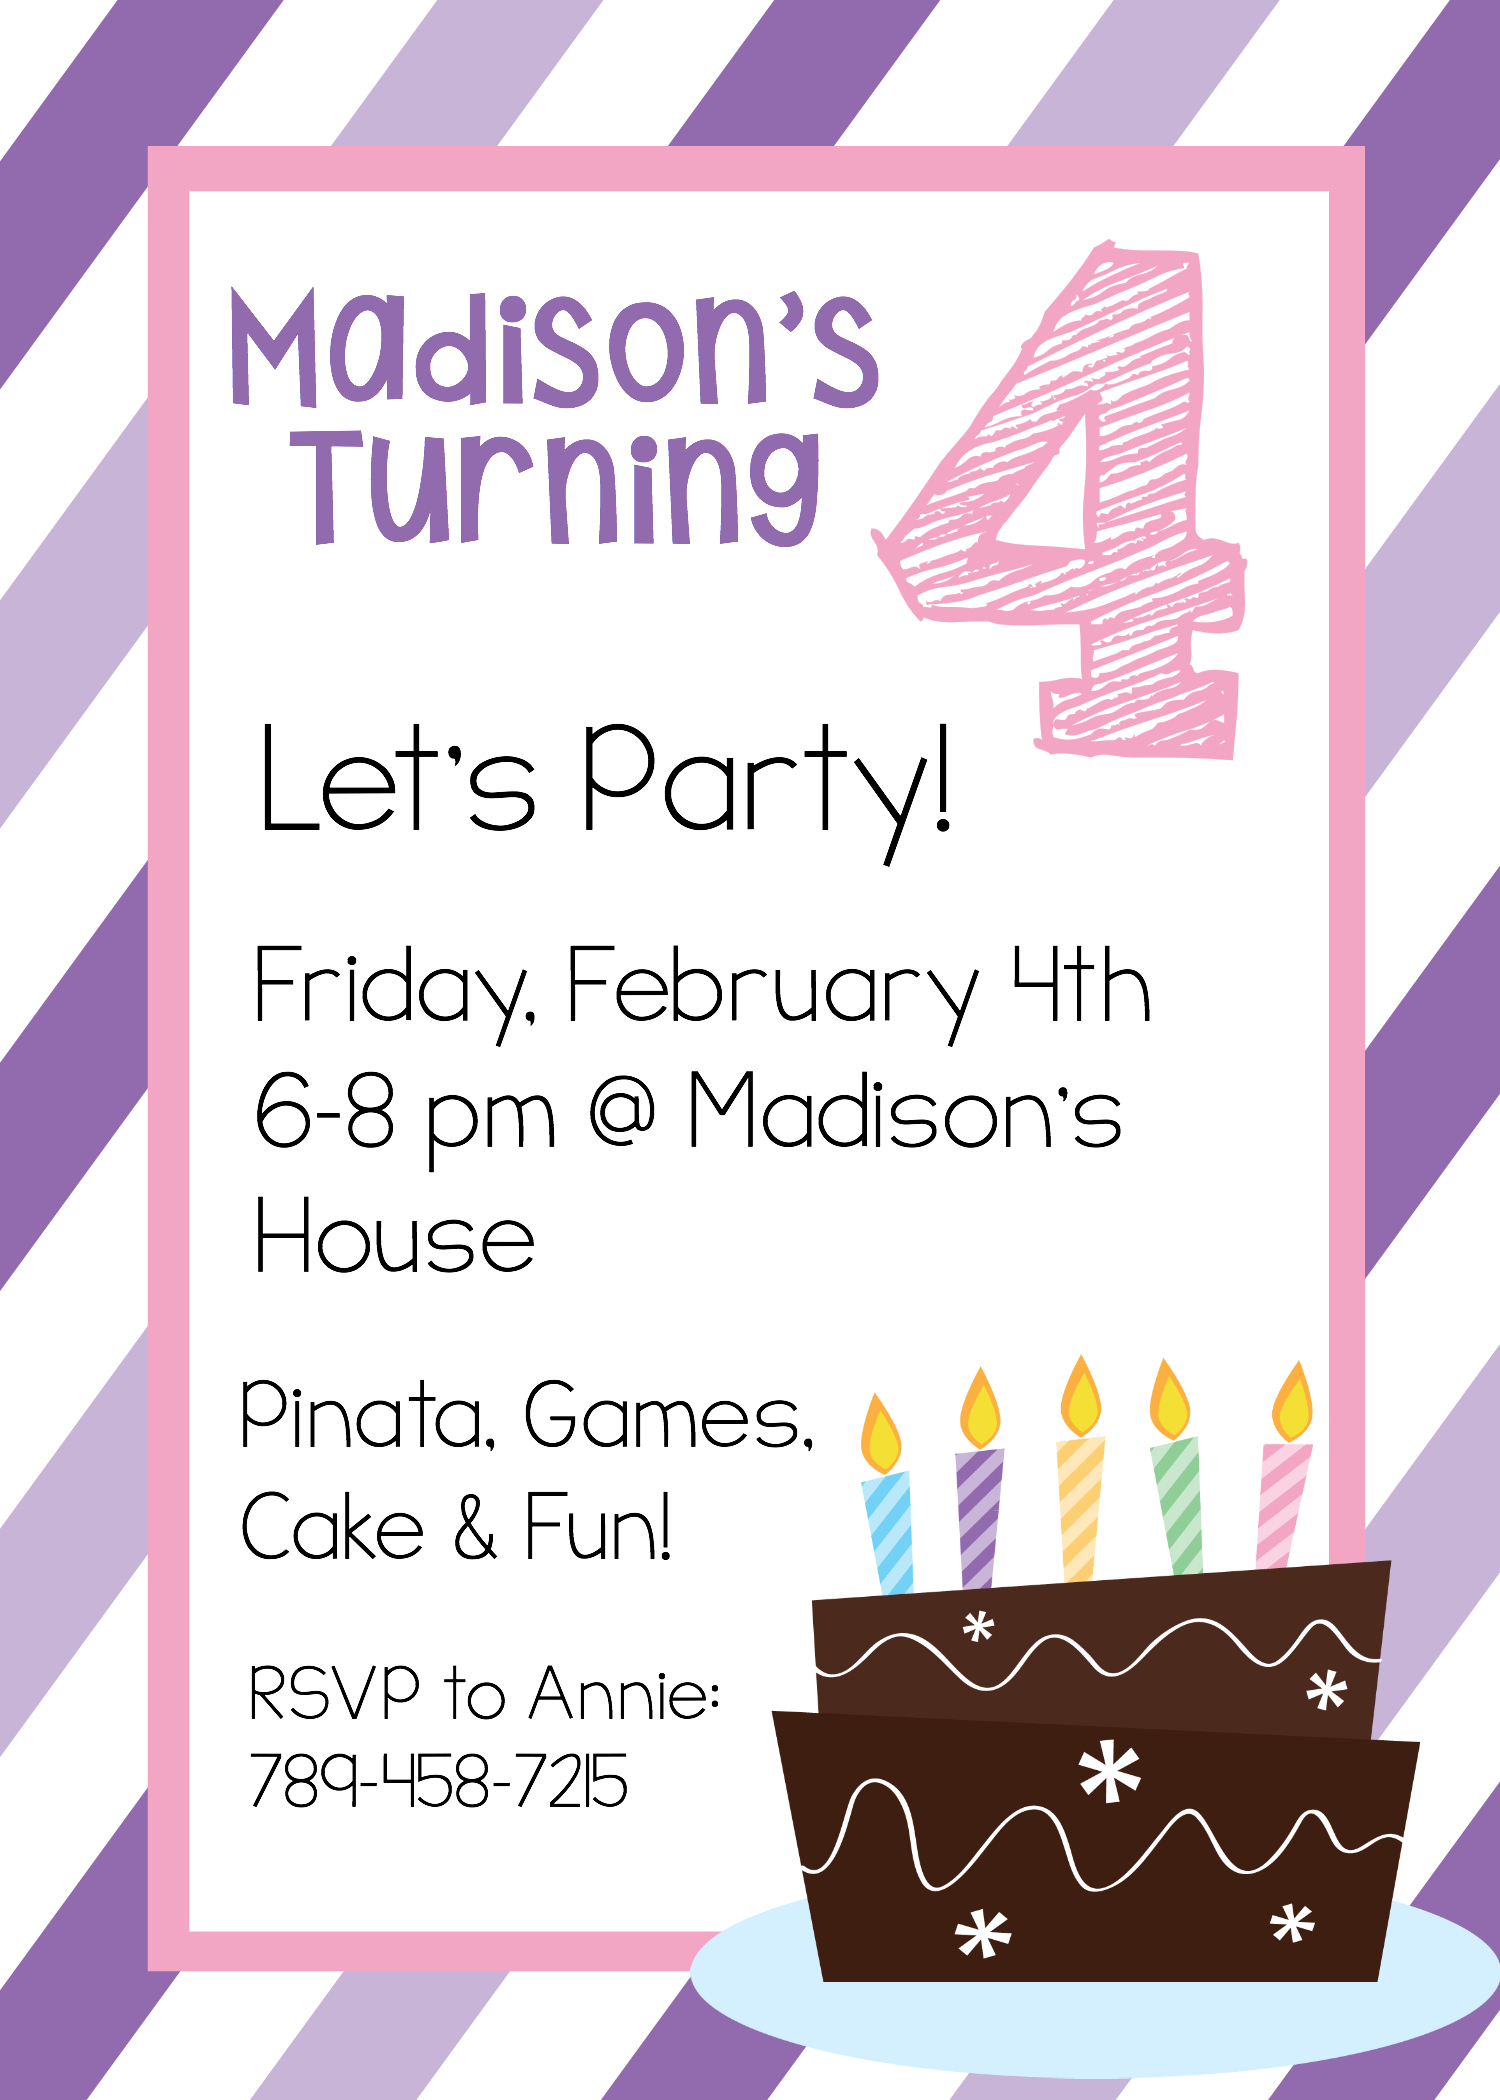 party invitations template free - Boat.jeremyeaton.co